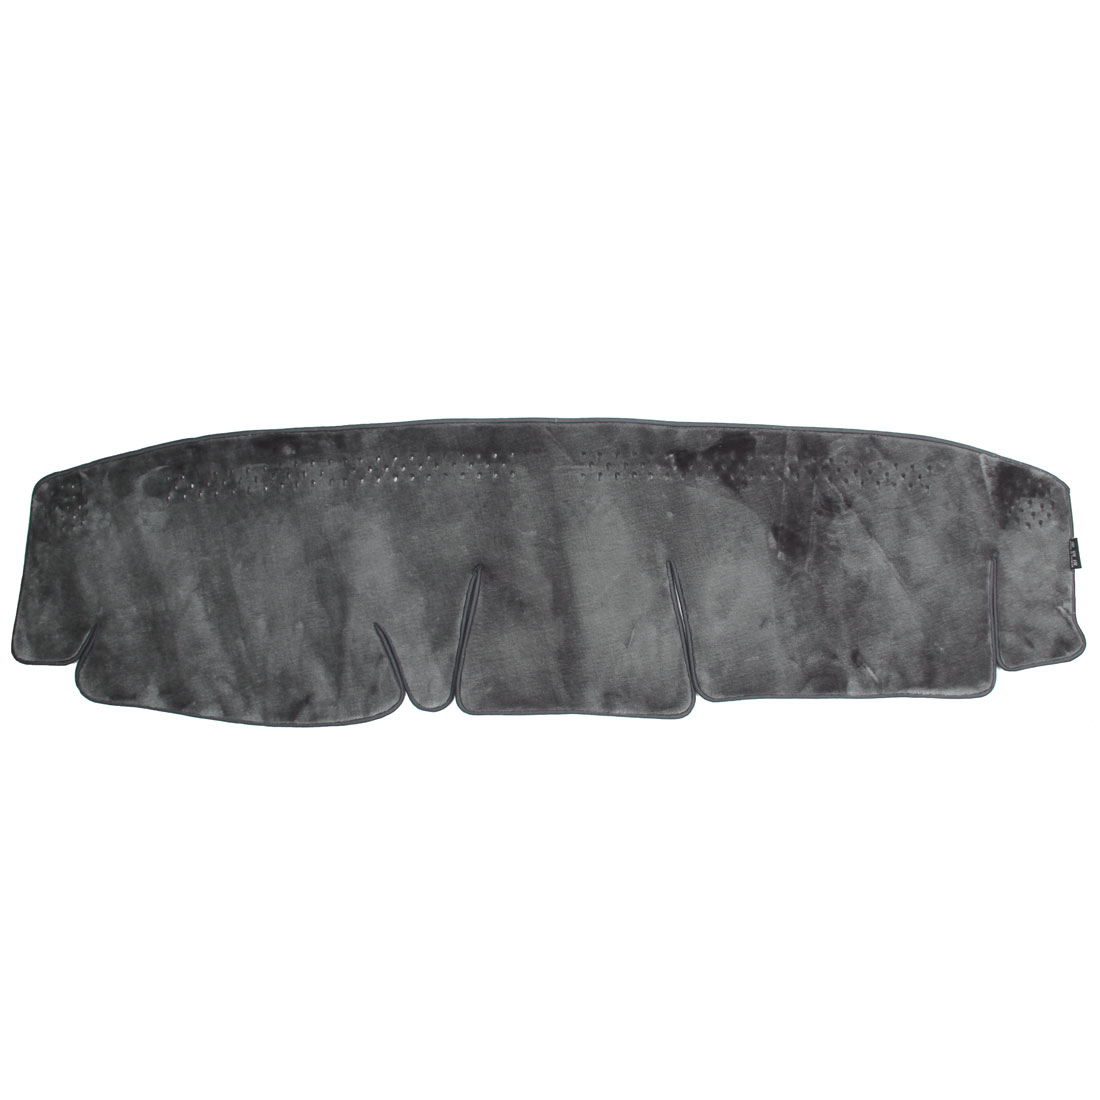 Car Dashboard Plush Sun Cover Mat Carpet Gray for Honda-2 2006 CRV